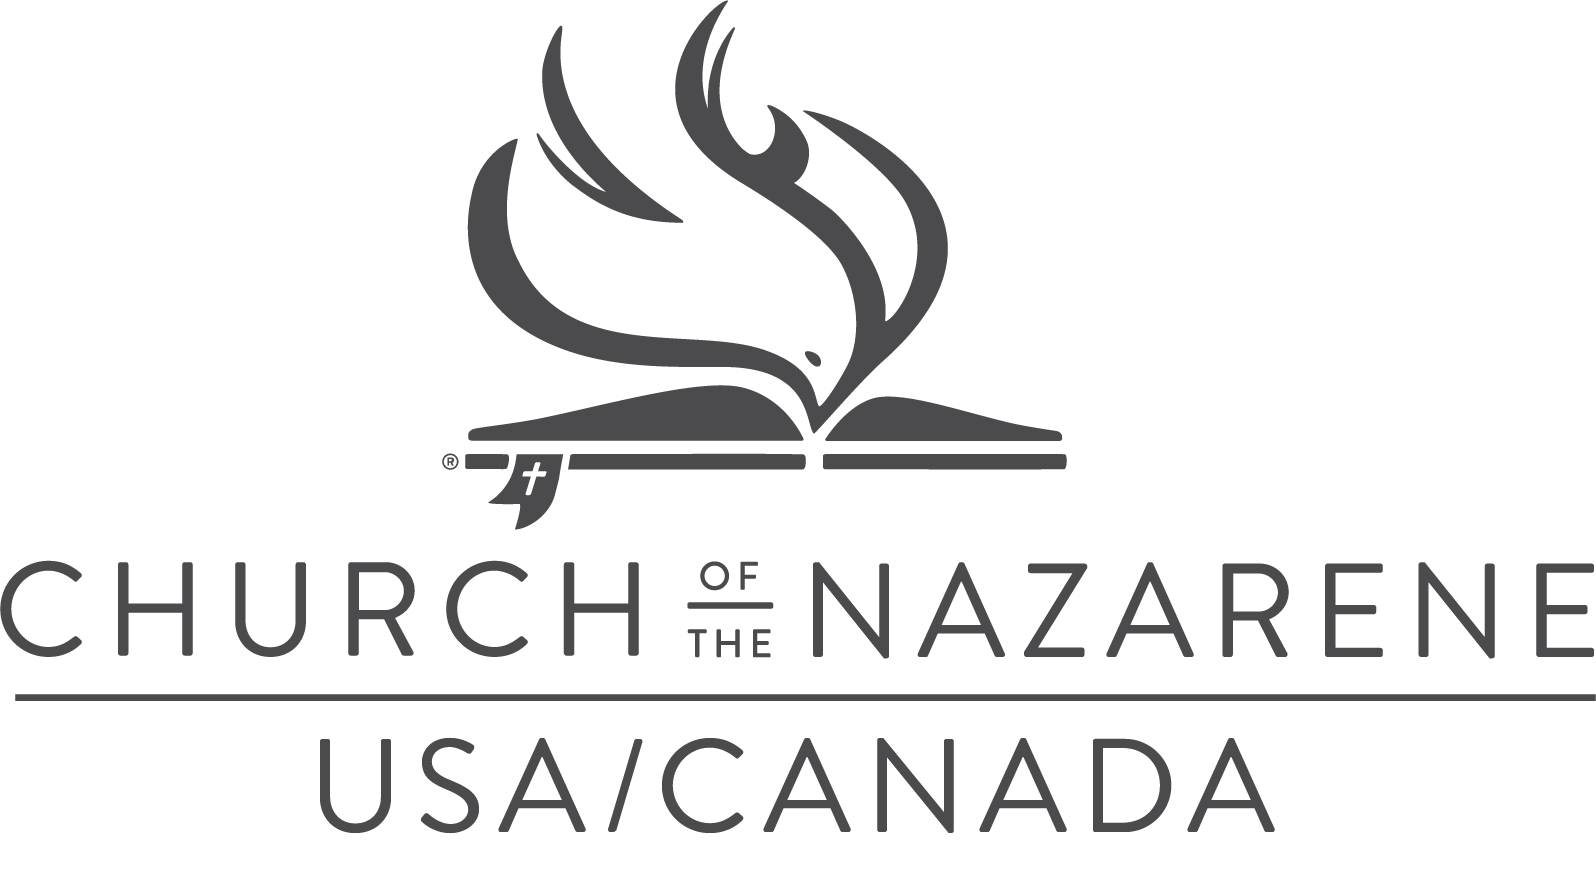 USA/Canada Region - Church of the Nazarene